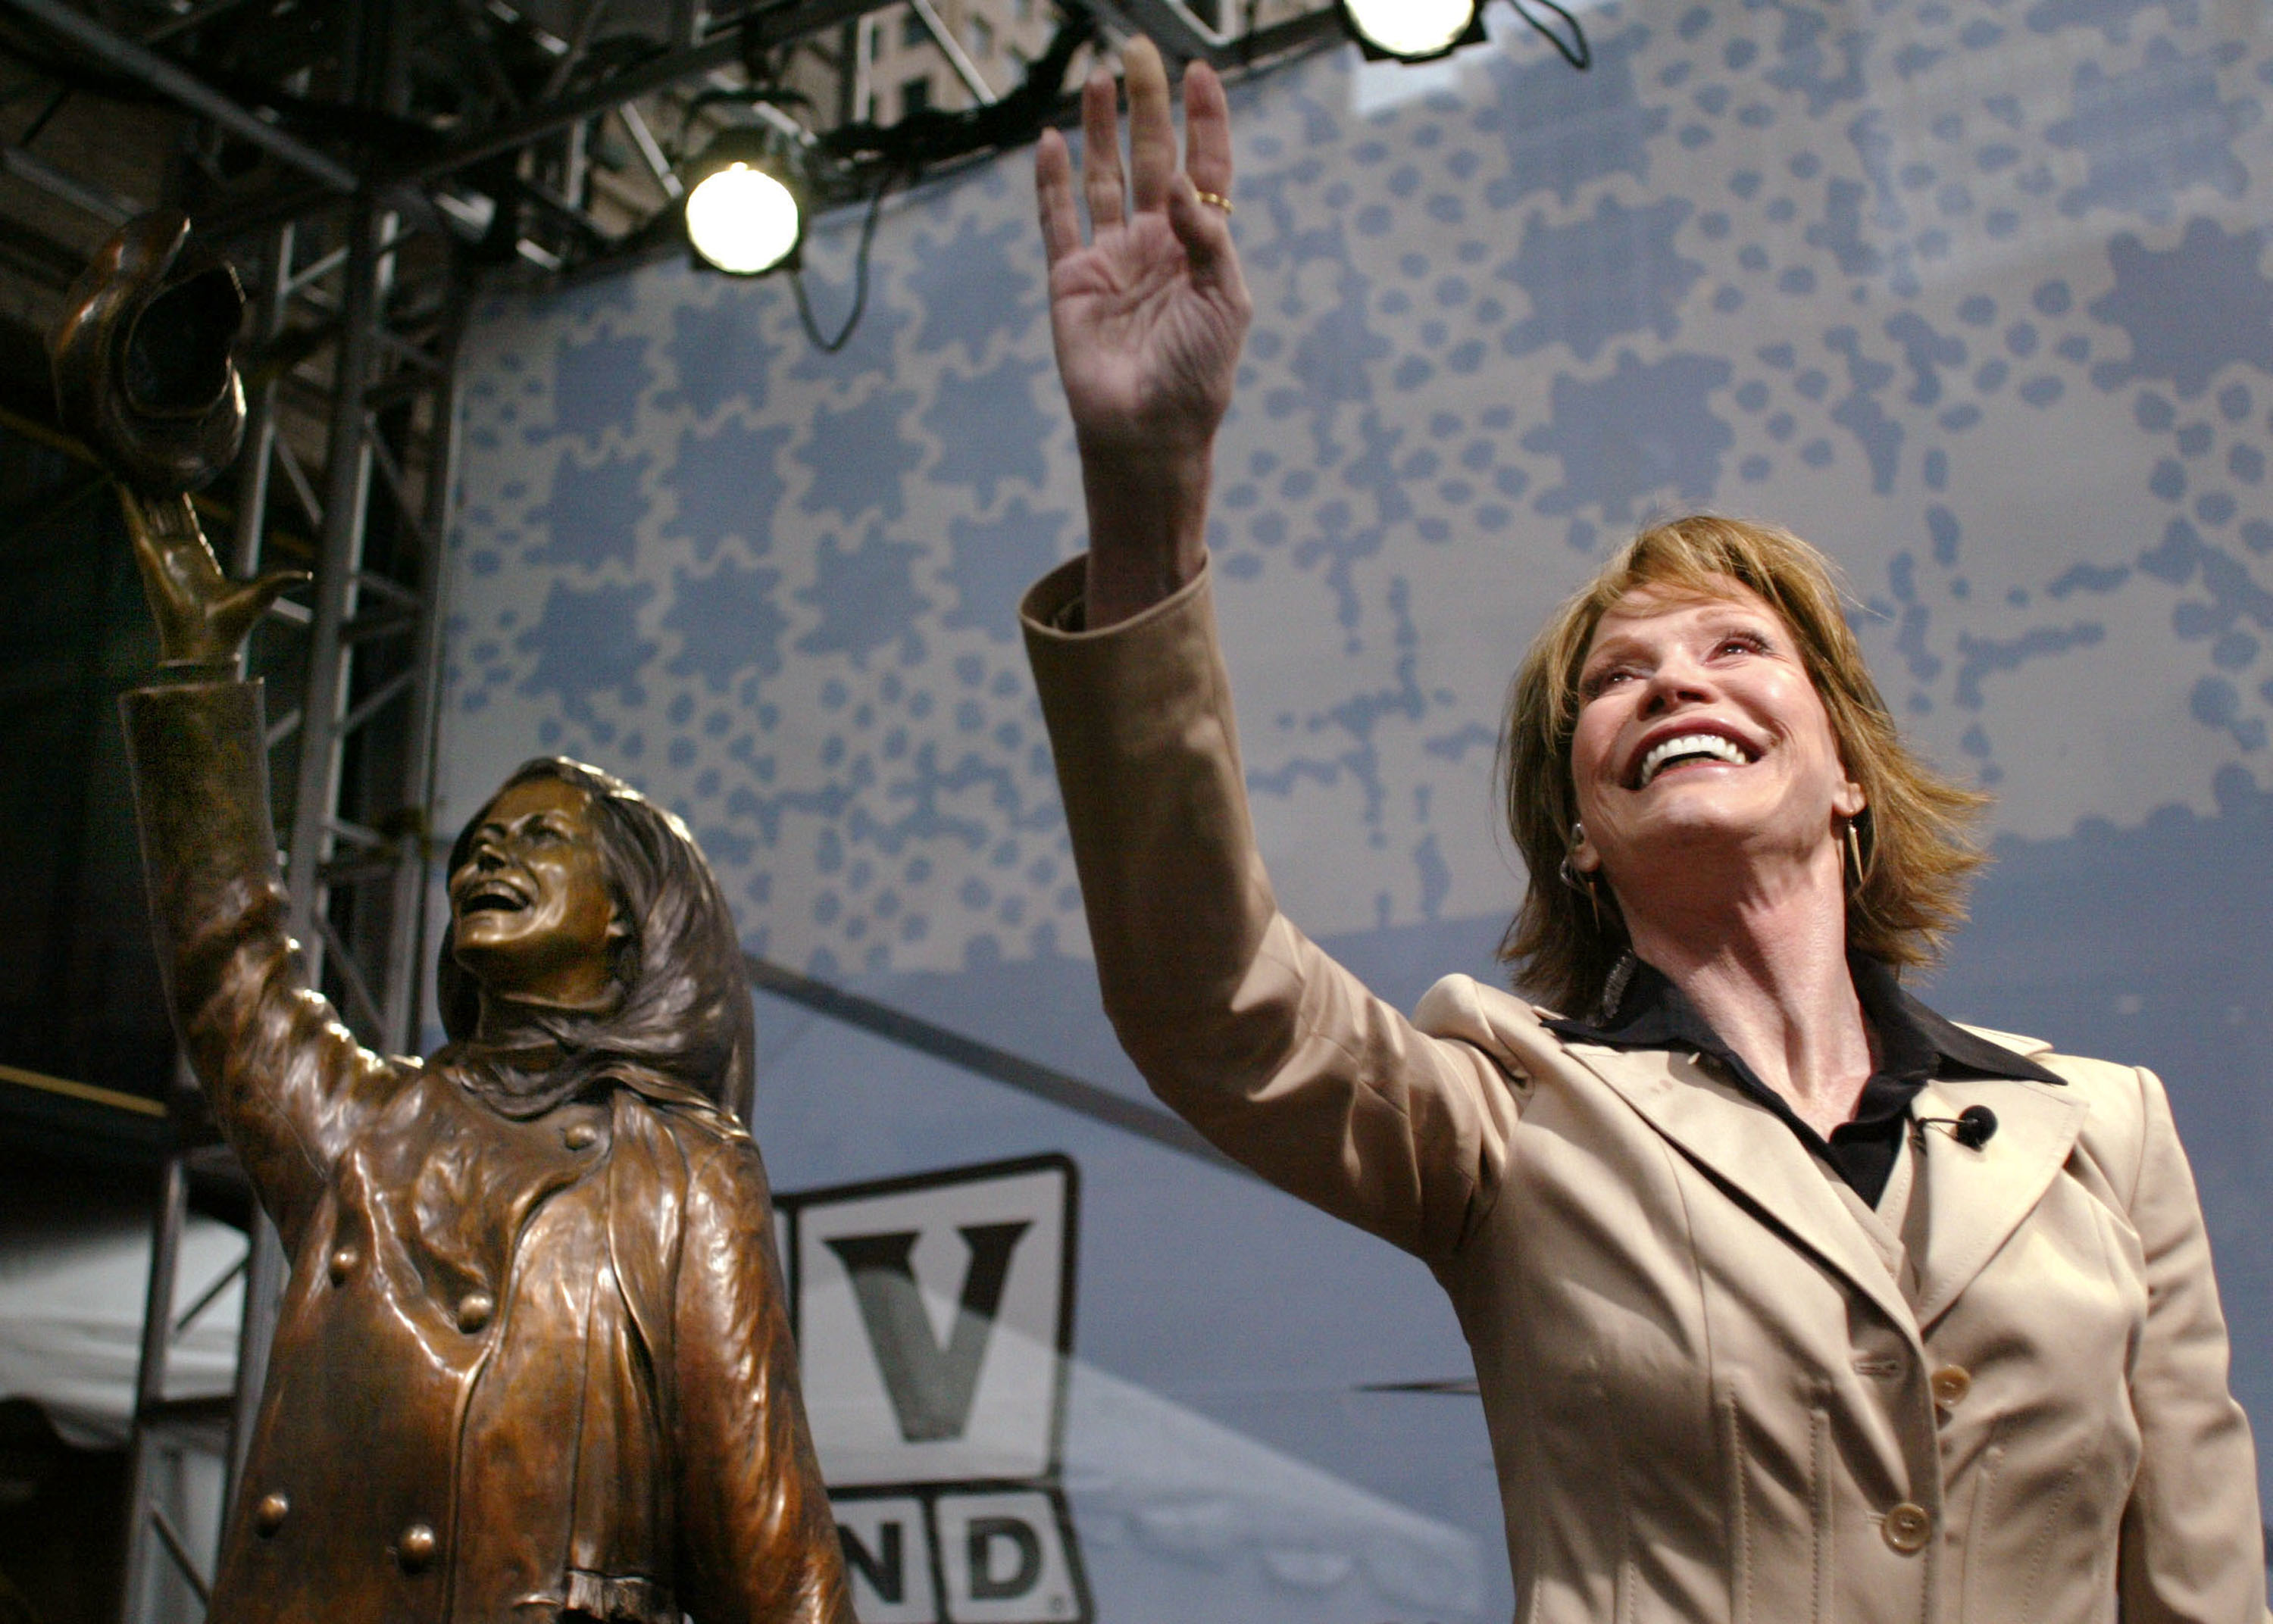 Mary Tyler Moore waves to the crowd next to a statue honoring her. The statue depicts Moore tossing her hat from the opening credits of The Mary Tyler Moore Show.